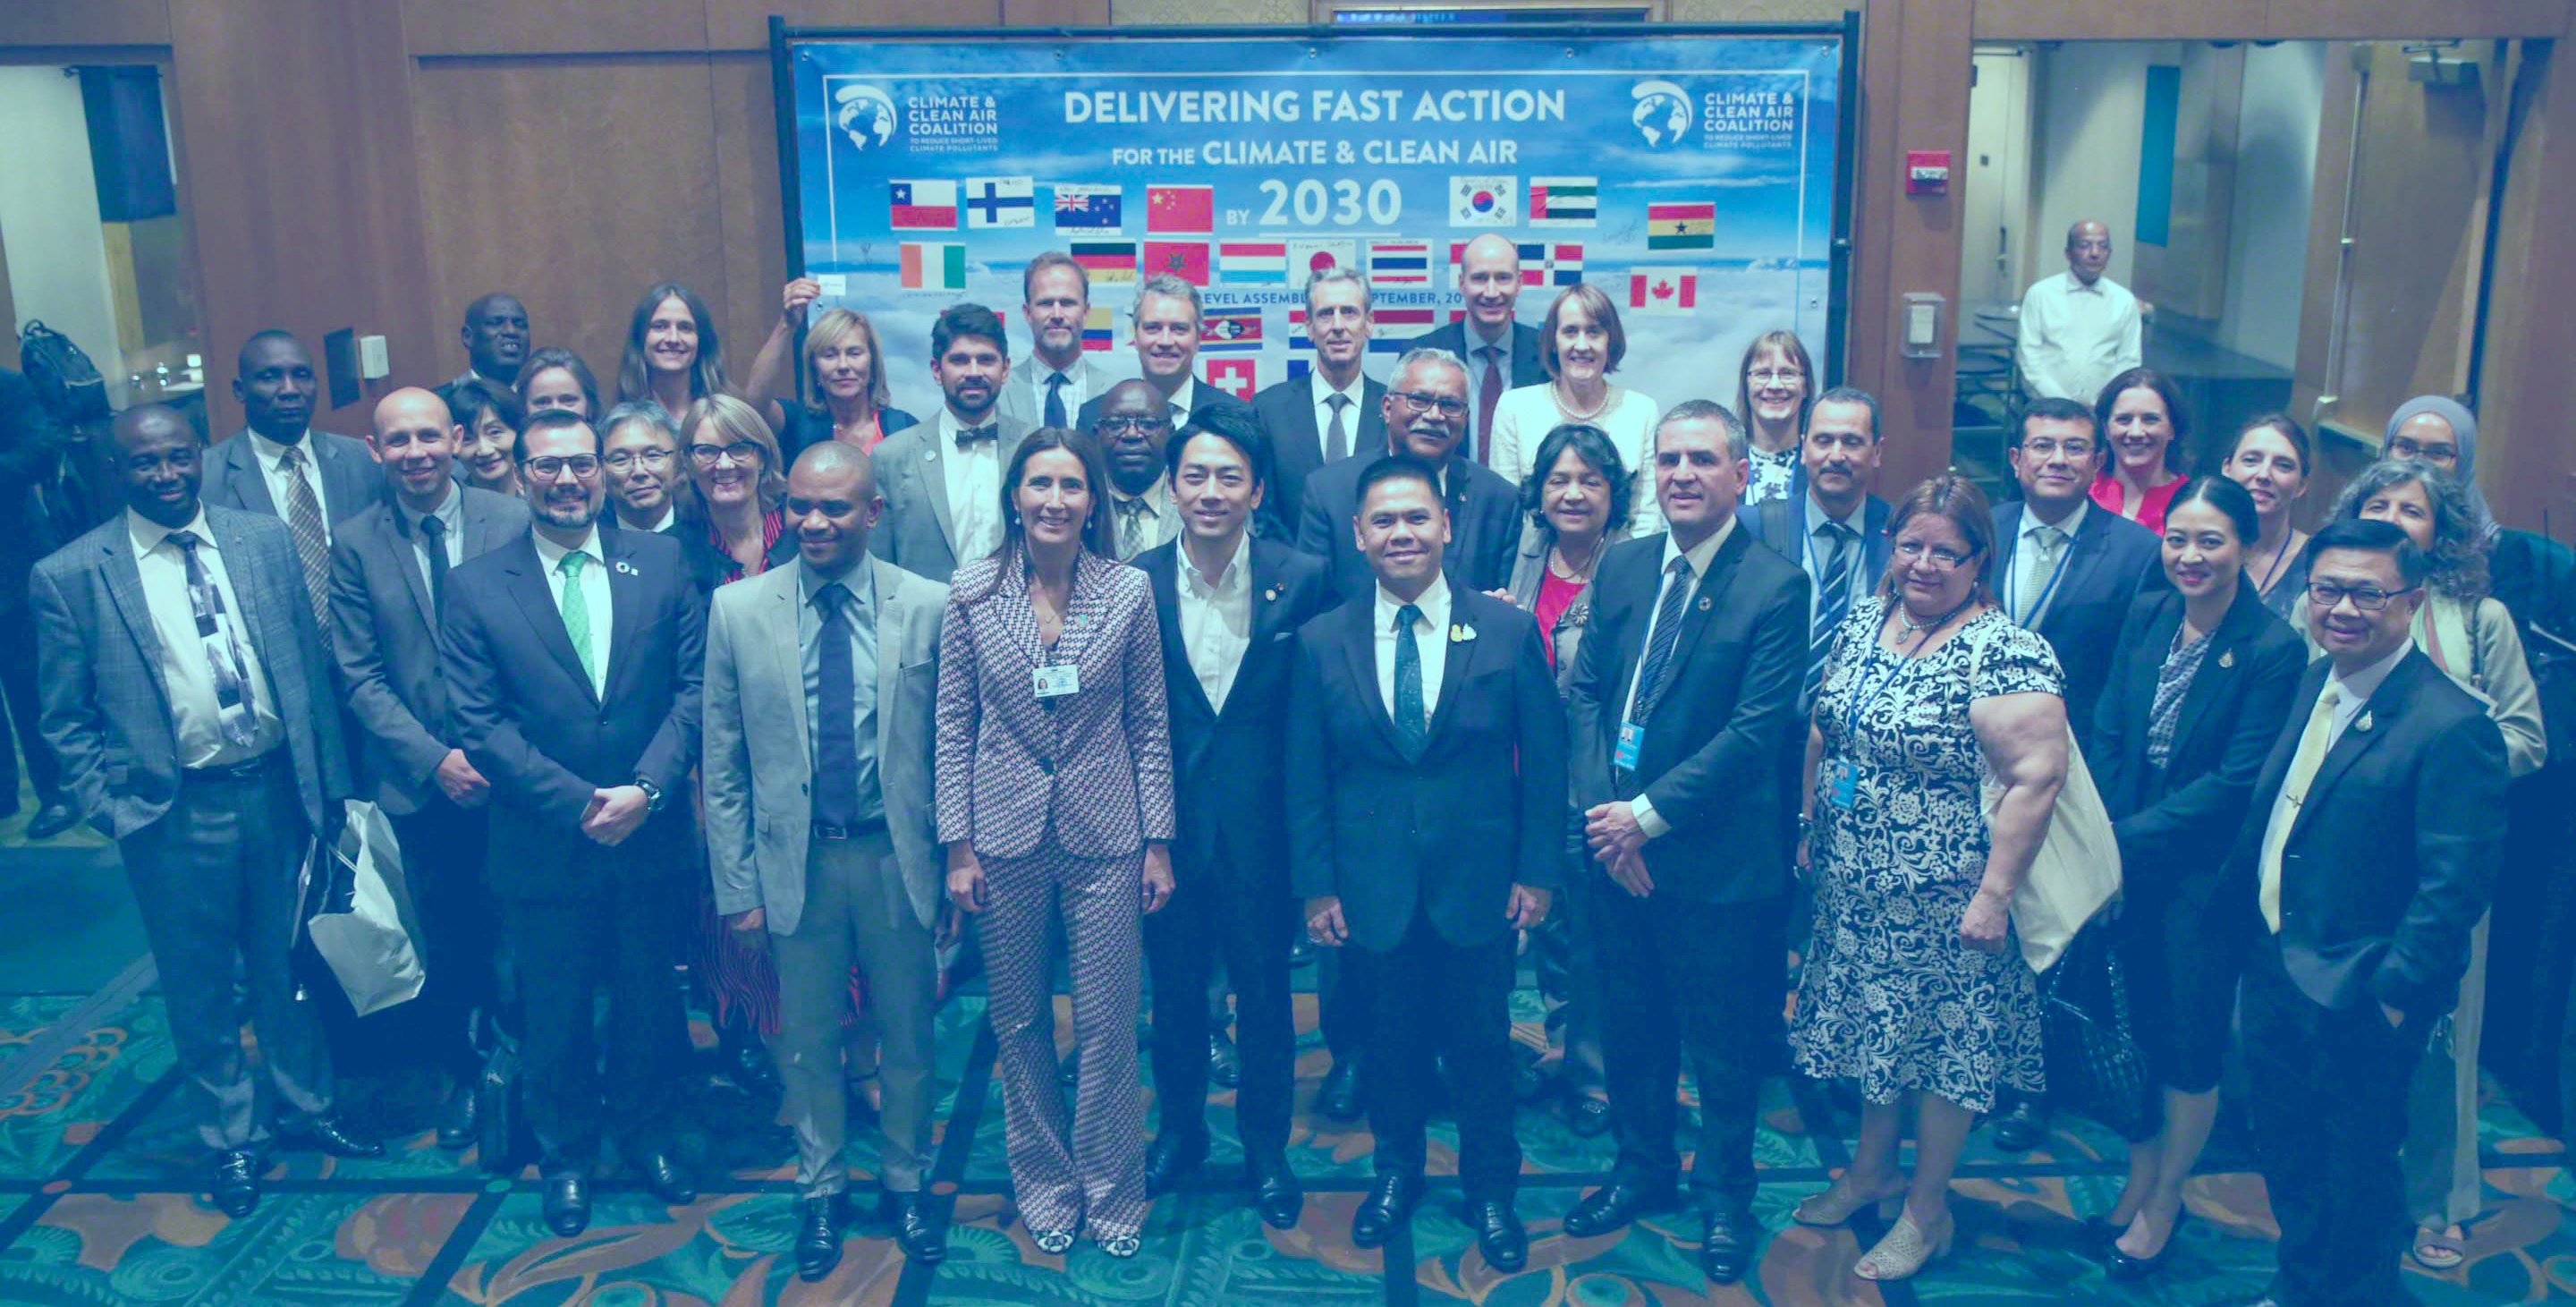 Family photo of the high level participants at the CCAC's 2019 High Level Assembly.